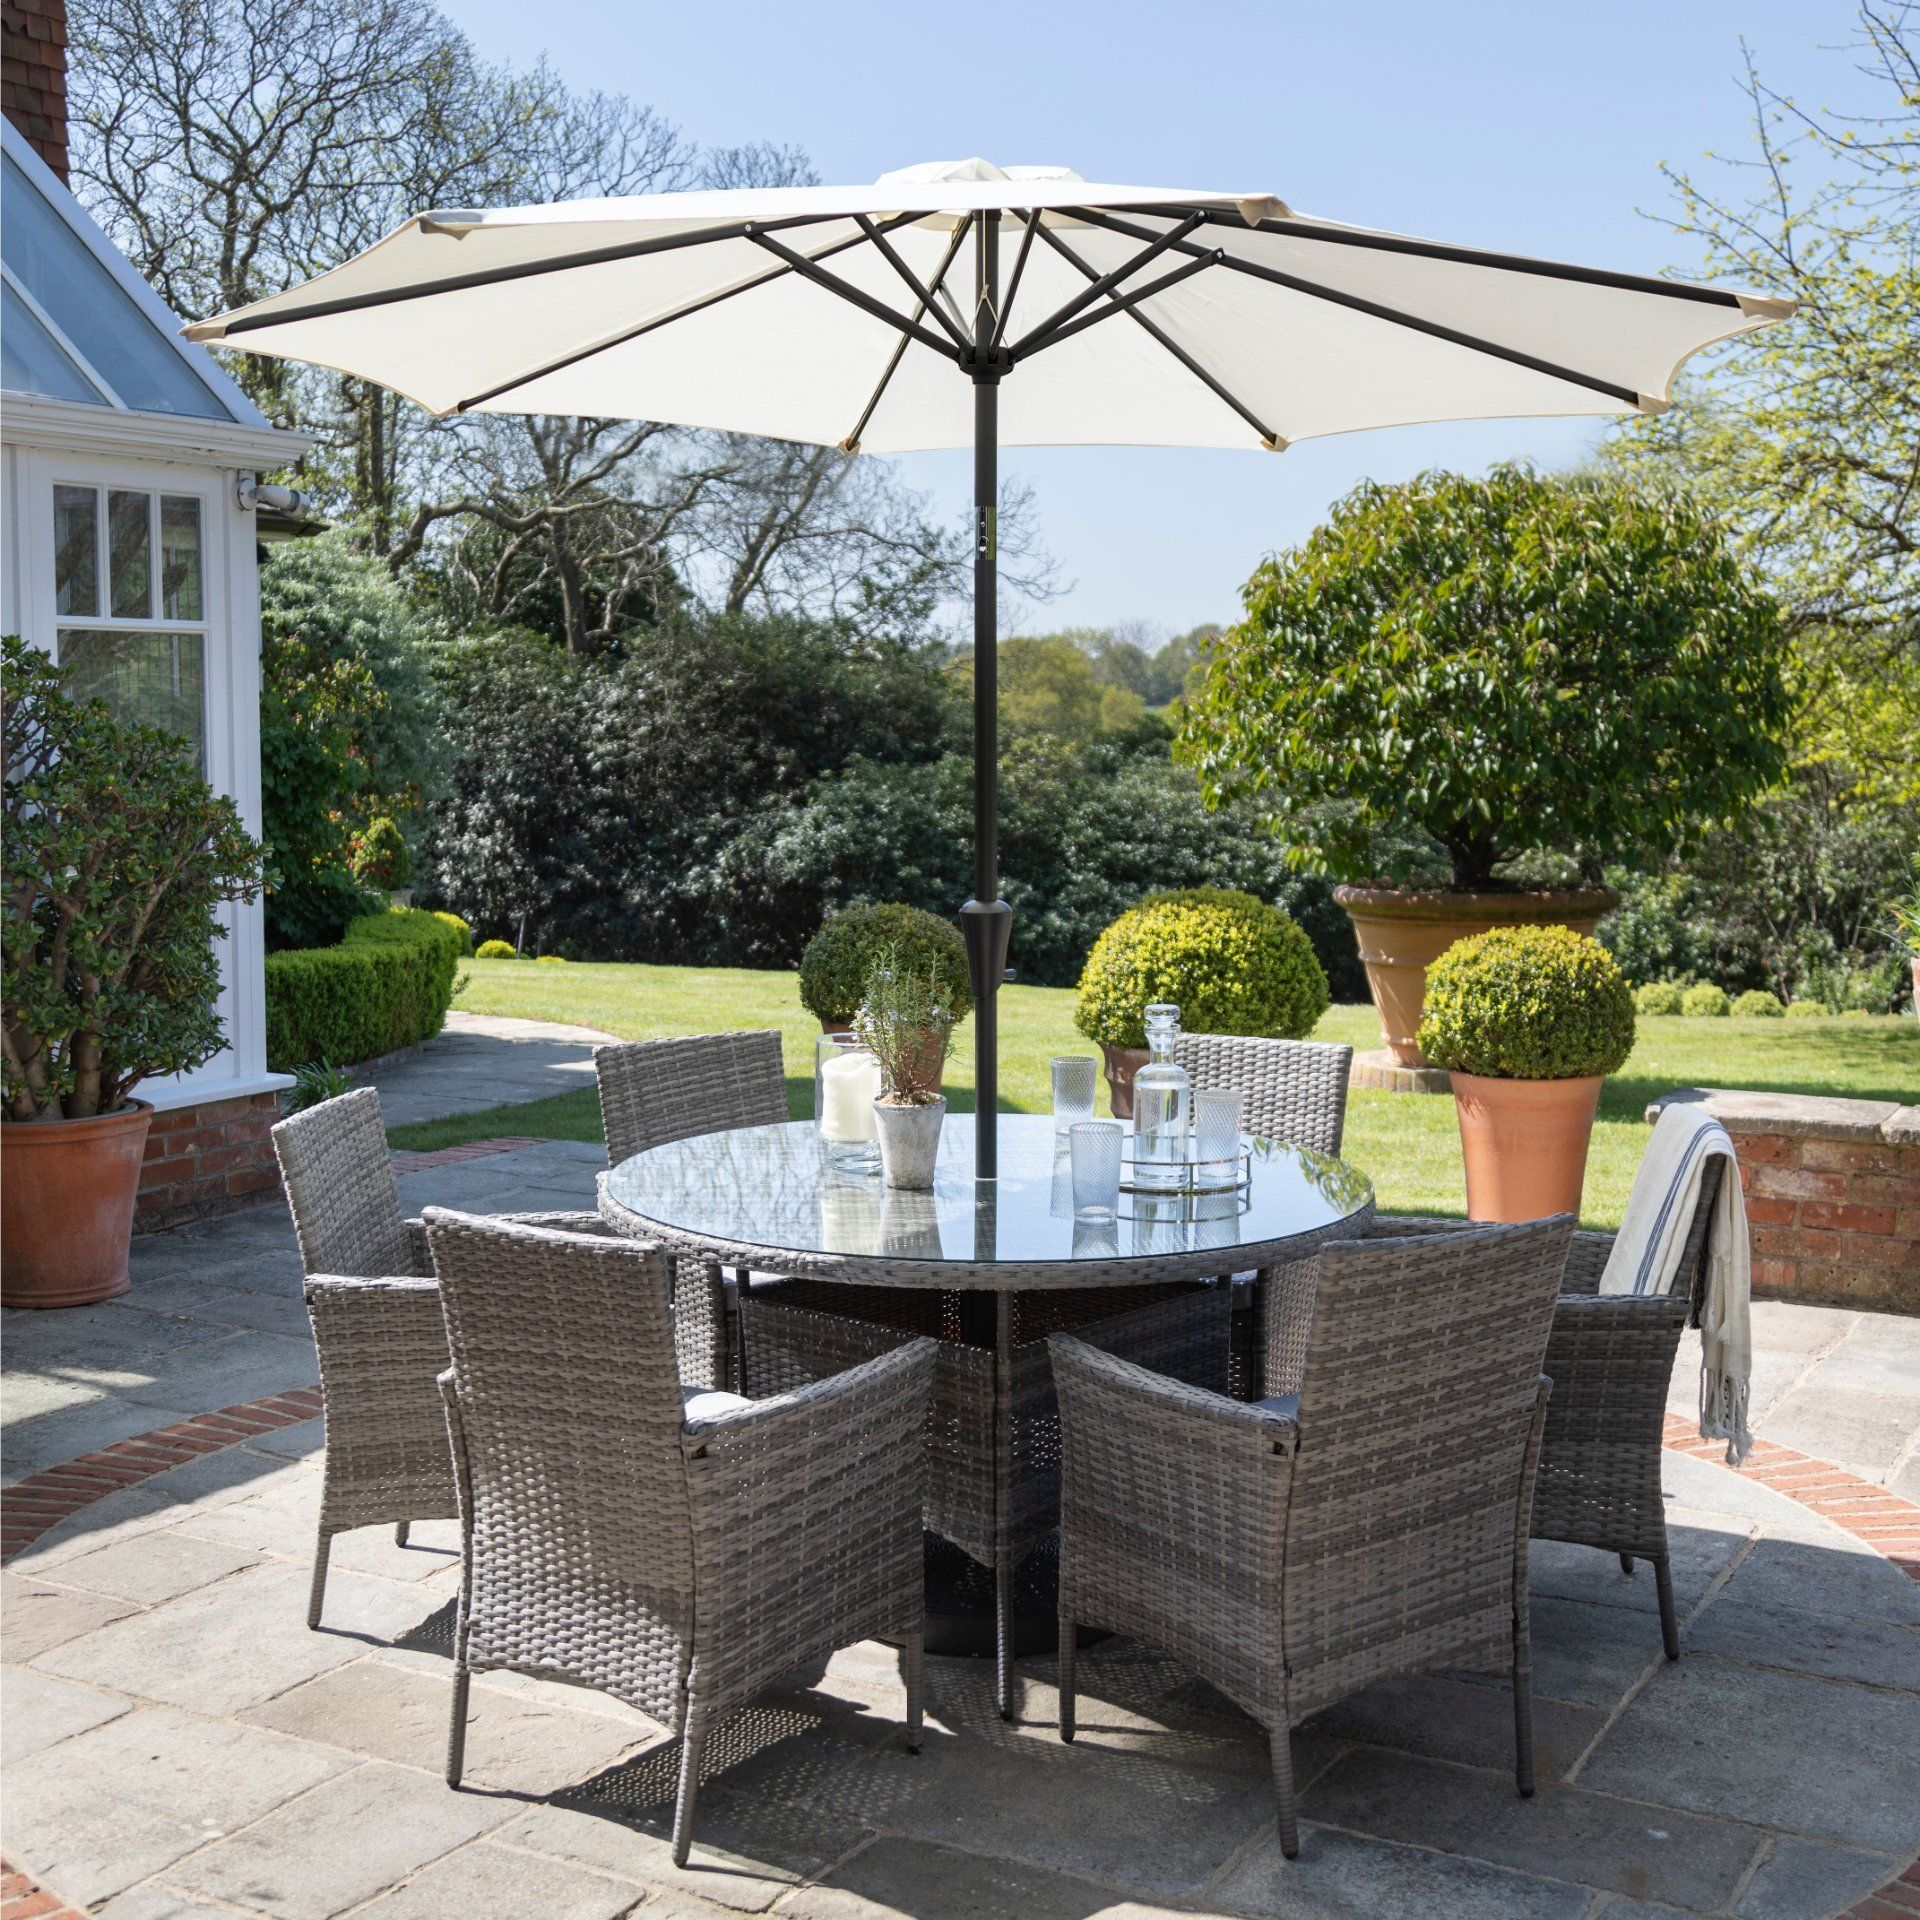 6 Seater Rattan Round Dining Set with Parasol - Rattan Garden Furniture - Grey - Laura James